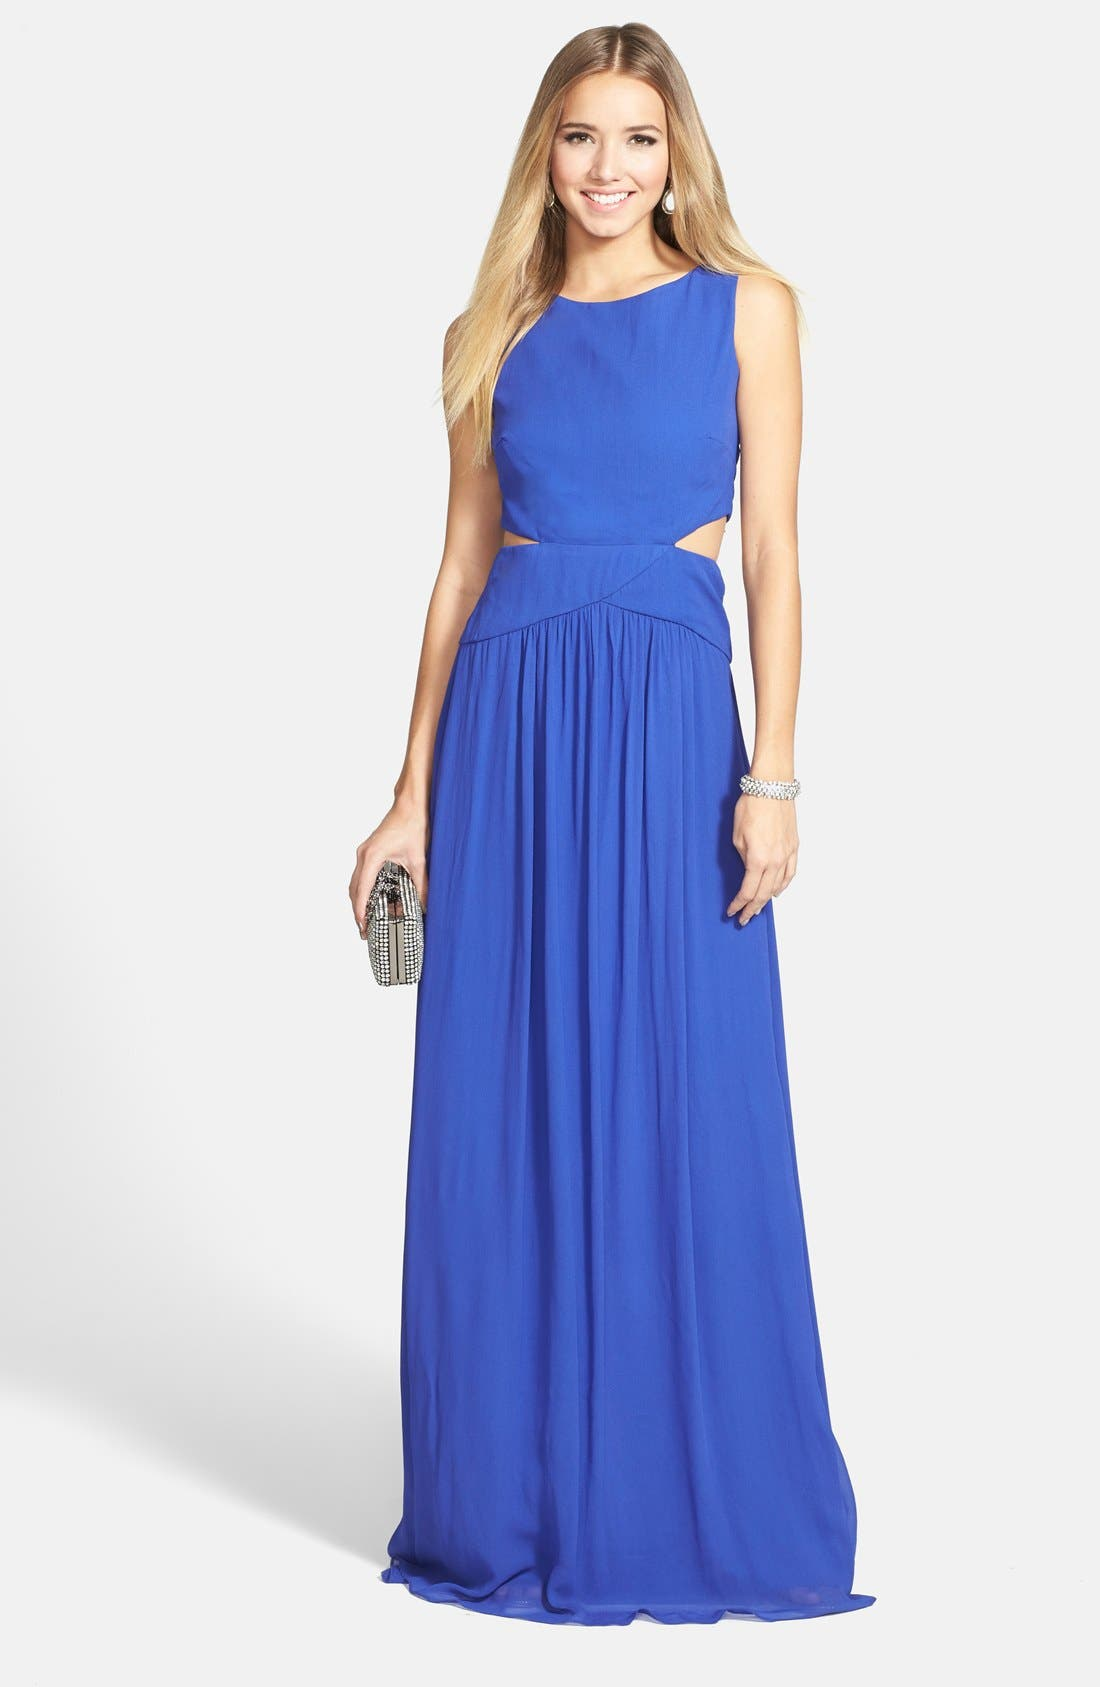 NICOLE MILLER 'Queen of the Night' Georgette Gown, Main, color, 400